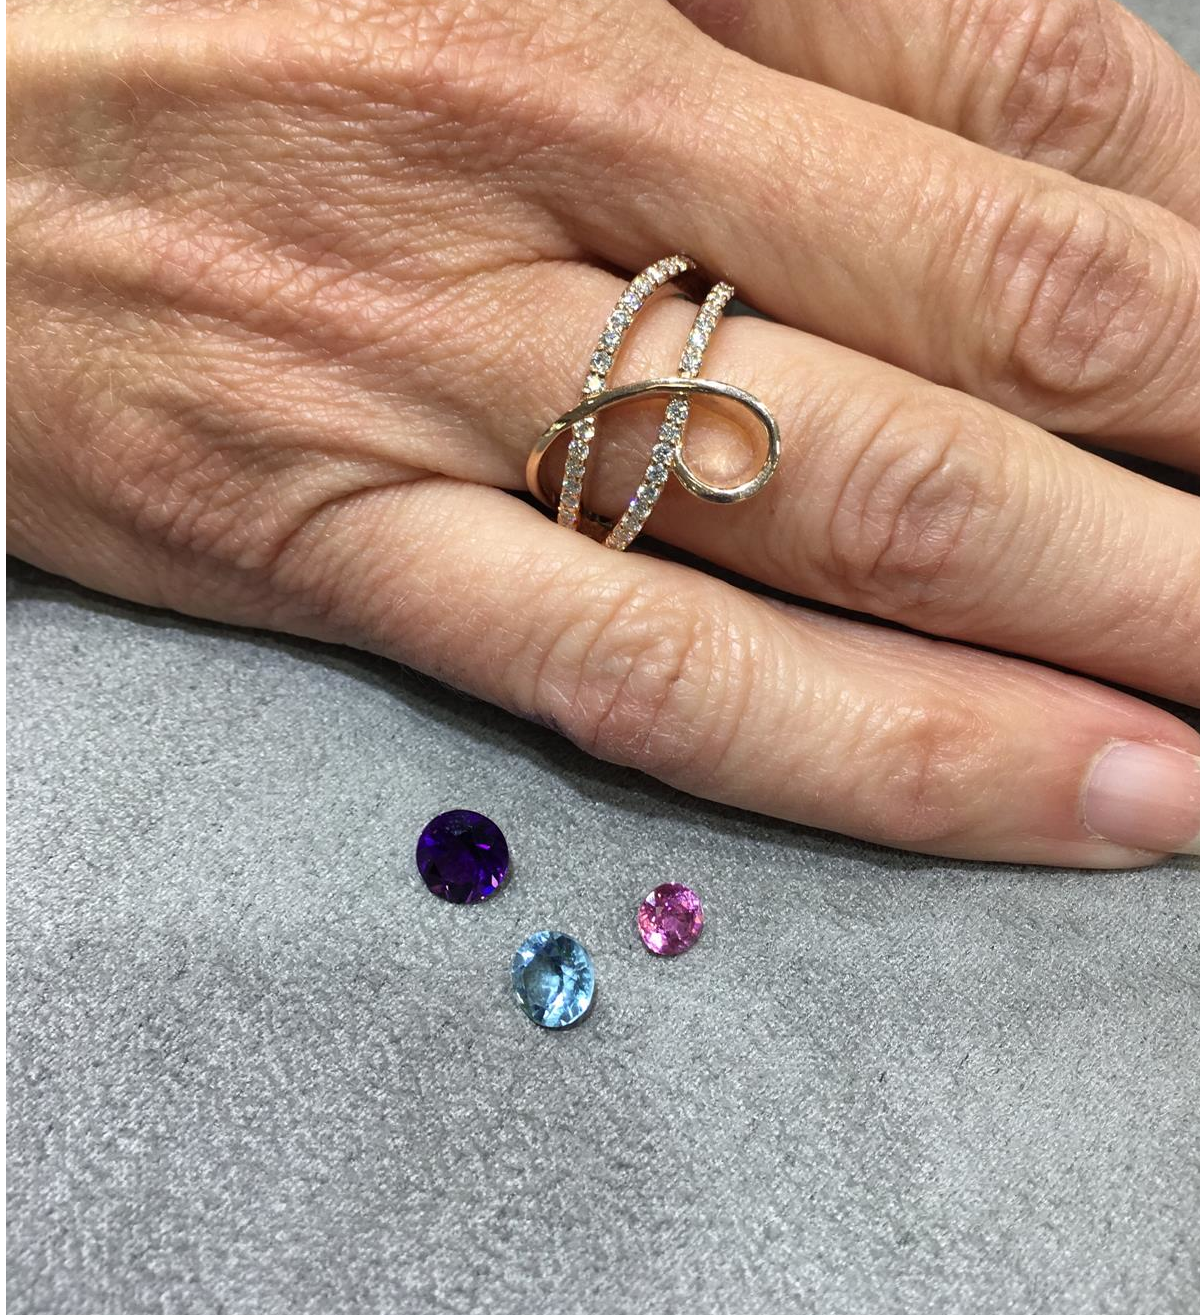 Setting and Loose Gemstones